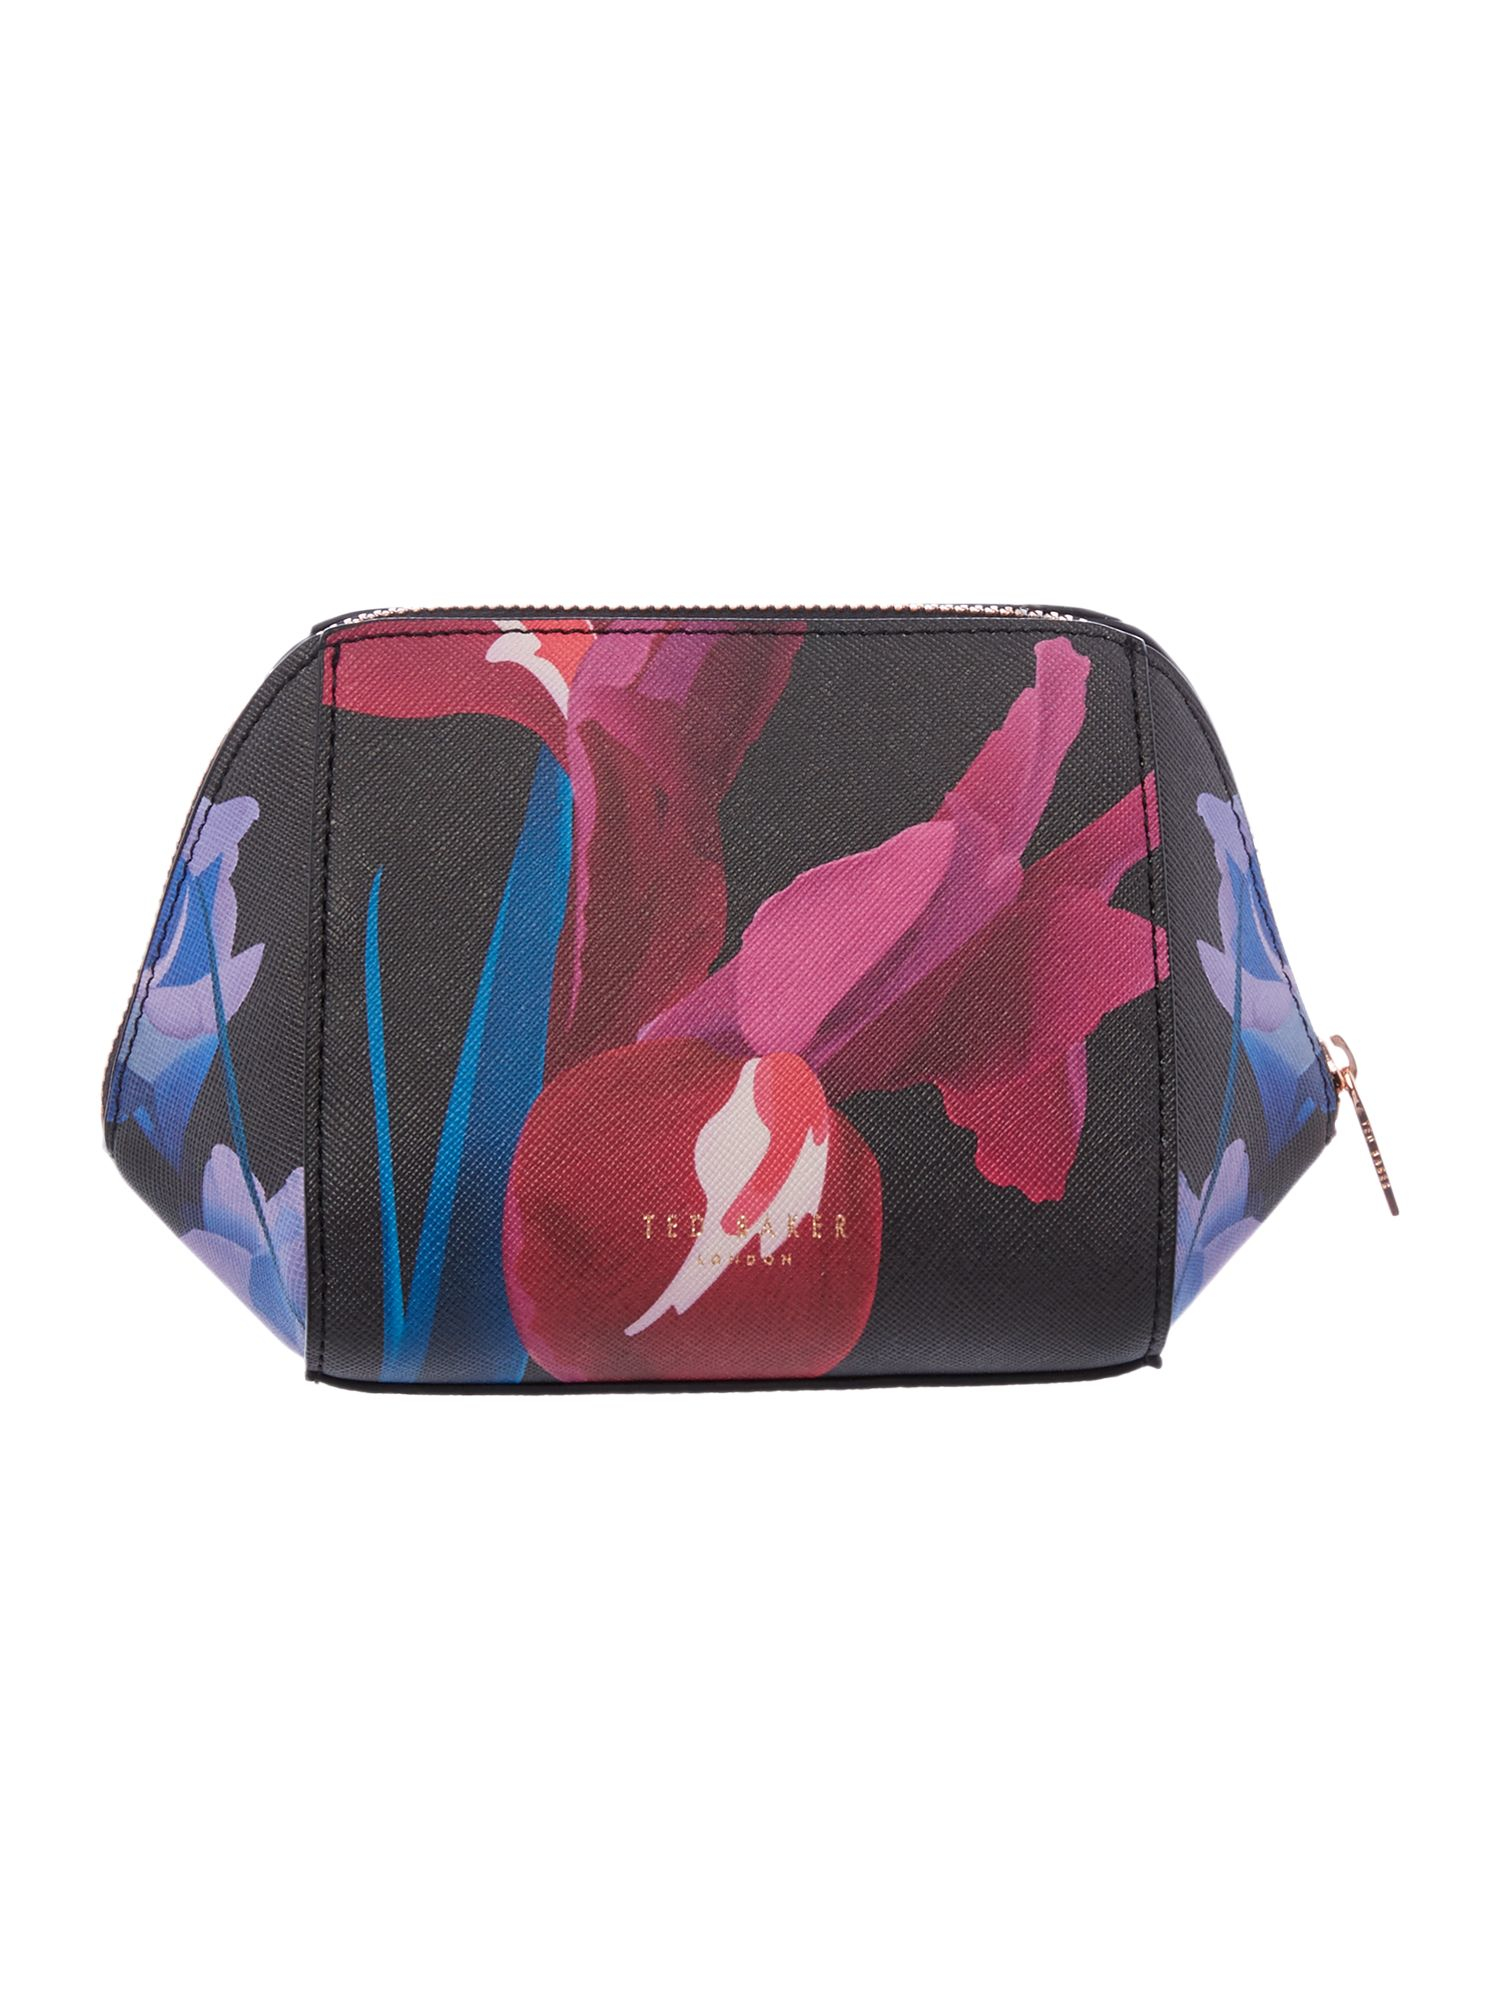 Lyst - Ted Baker Floree Black Floral Small Bow Cosmetic Bag In Black